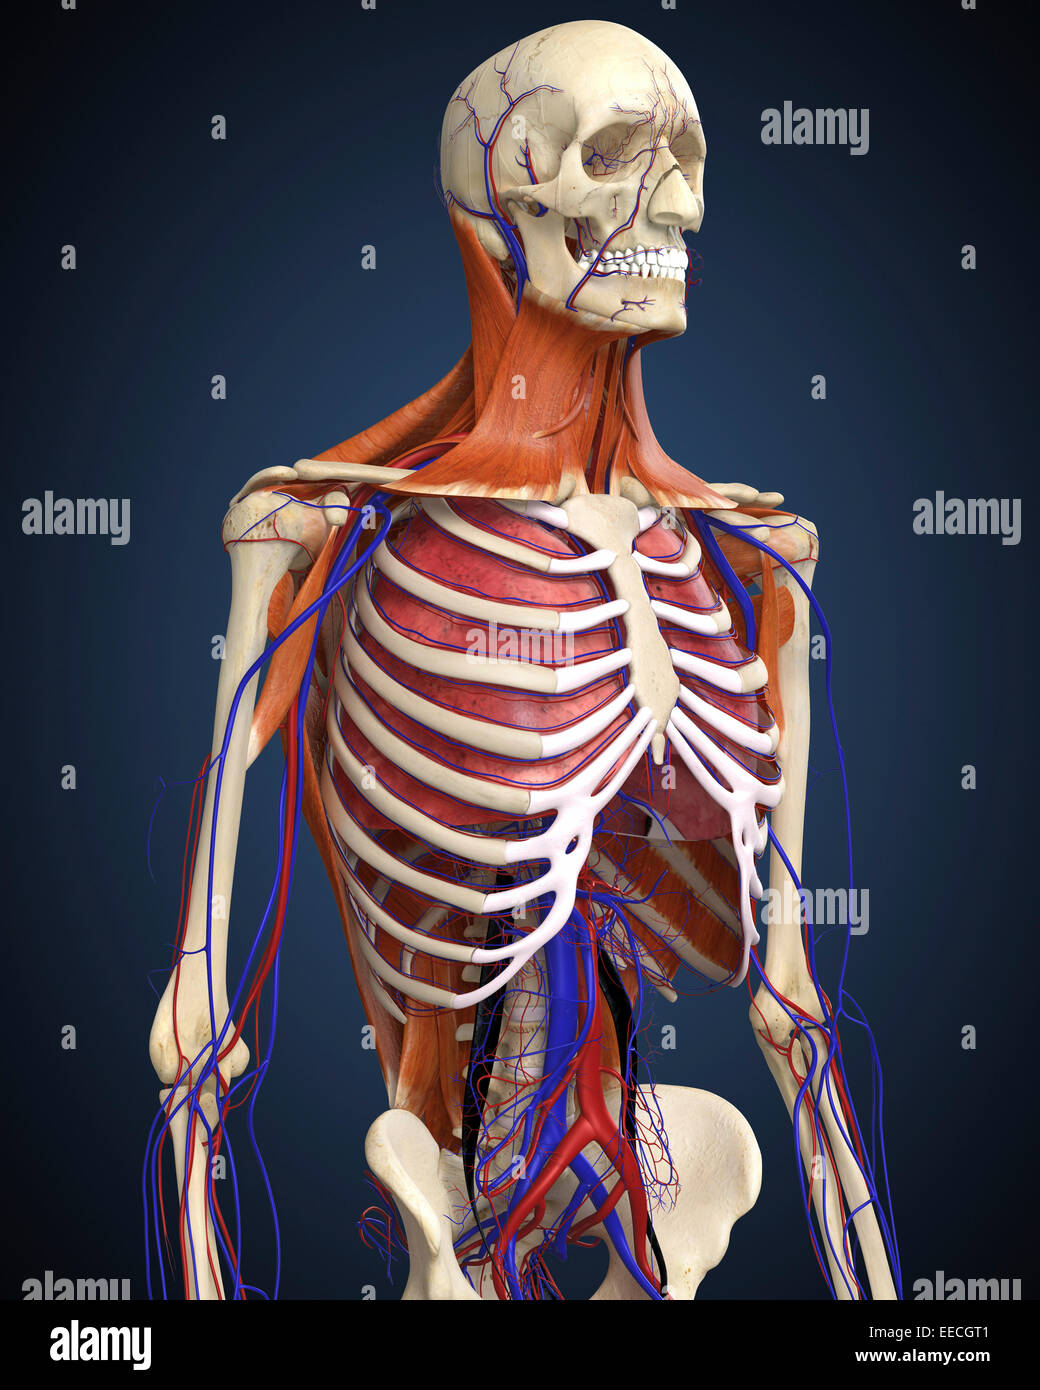 Human upper body showing bones lungs and circulatory system stock human upper body showing bones lungs and circulatory system ccuart Choice Image